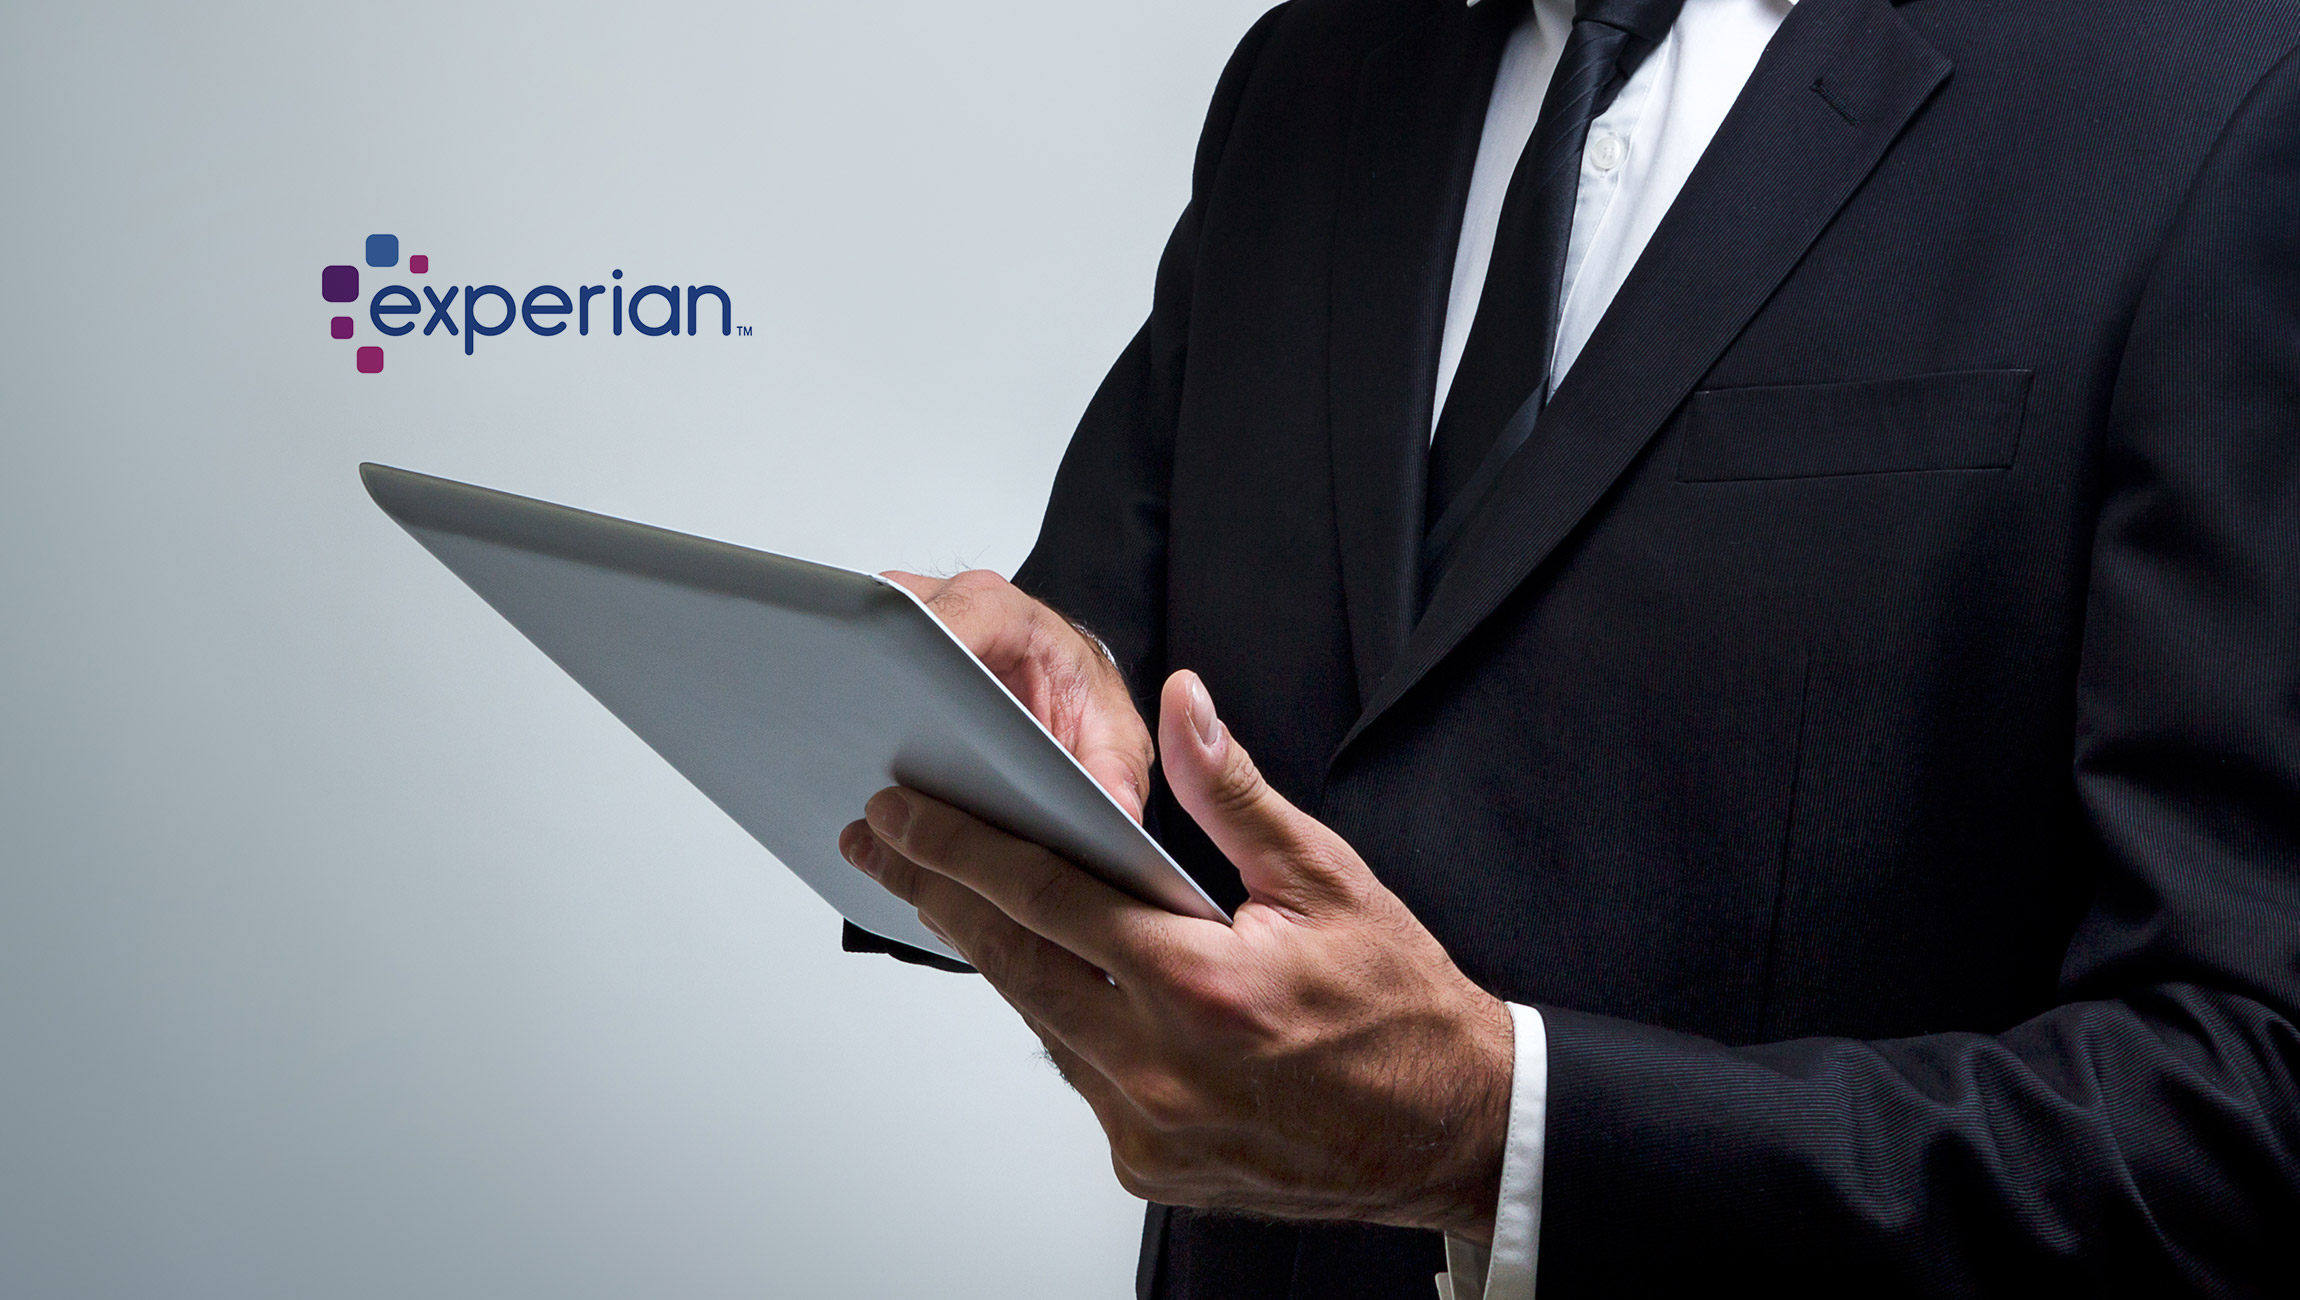 Experian: 'What's Taking So Long?' 51% of Customers Are Fed-Up with Lengthy Digital Onboarding Process